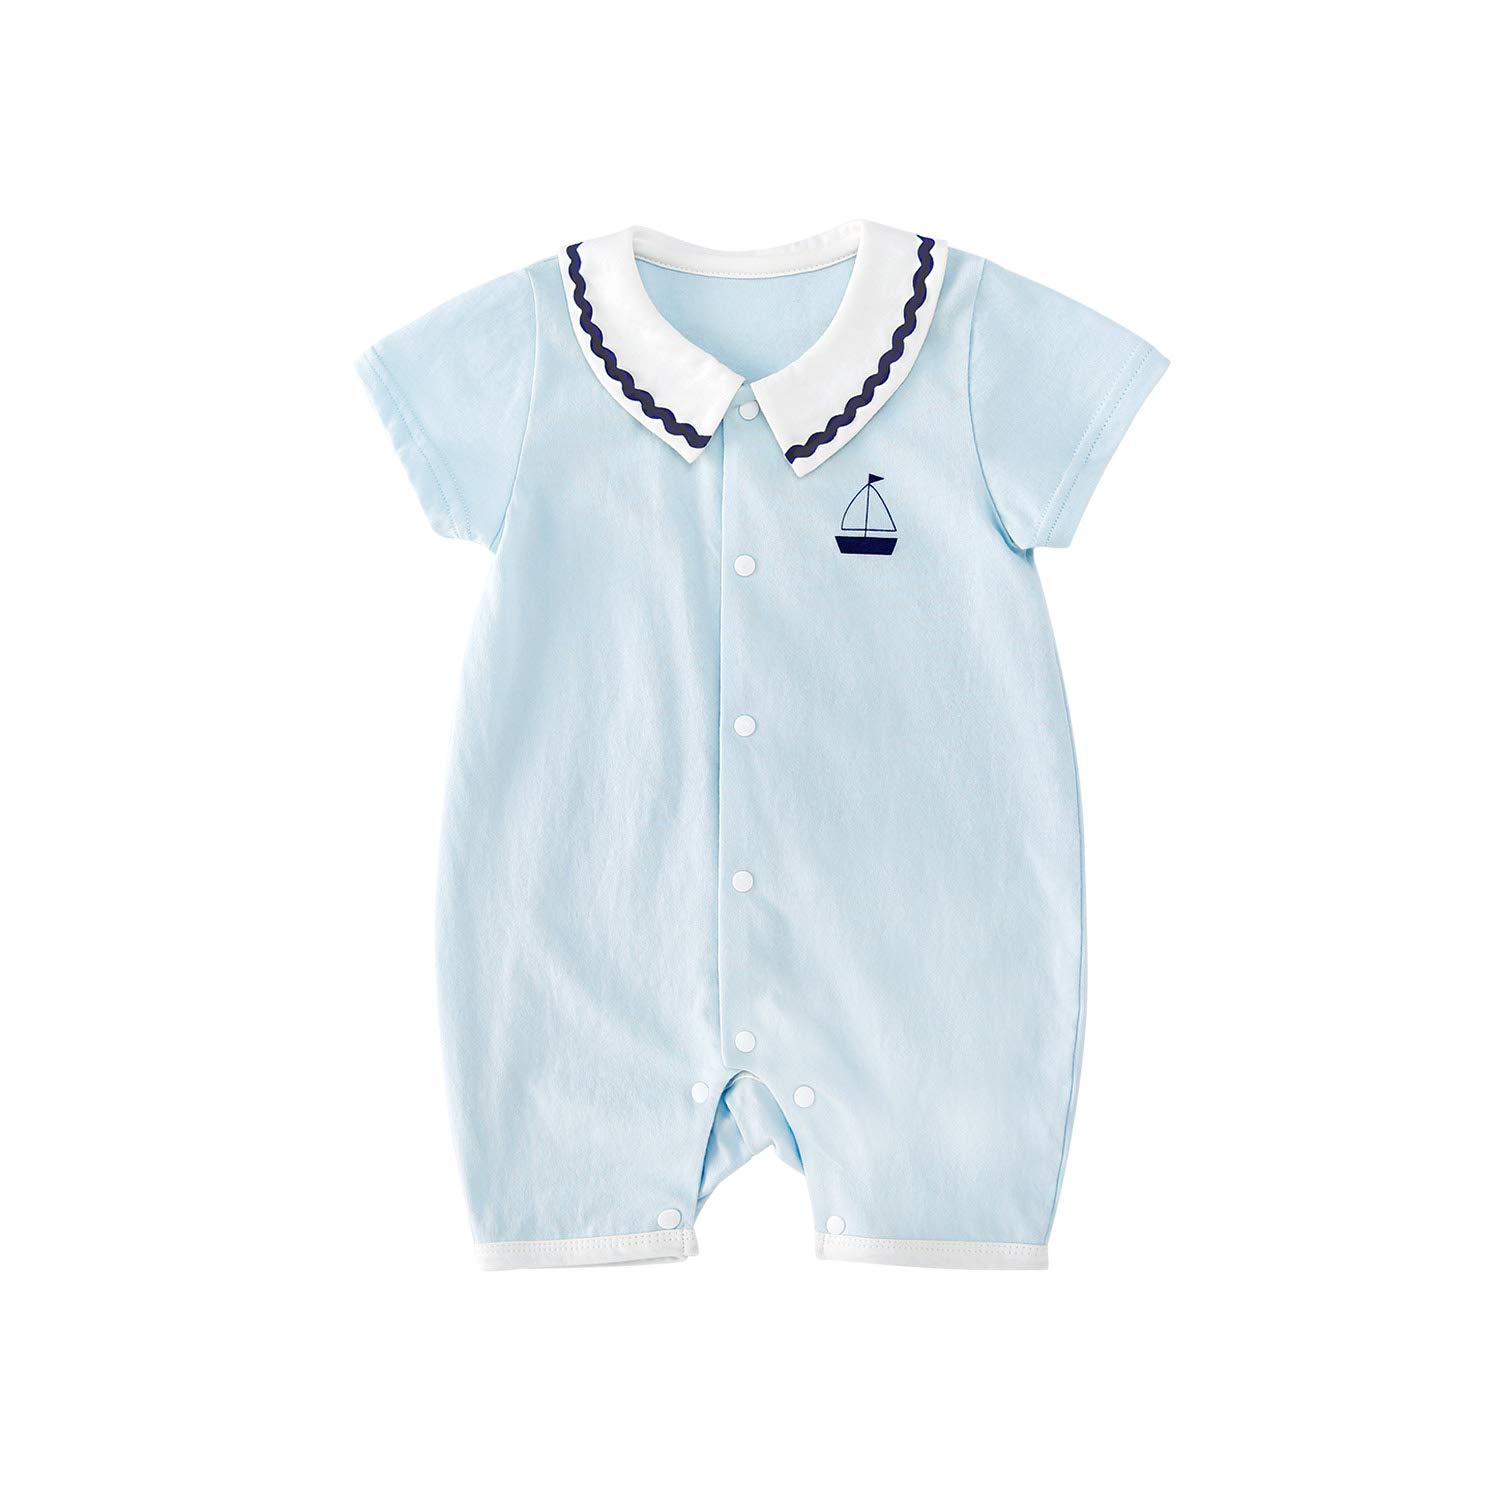 pureborn Baby Boys Cotton Romper Summer Clothes Sailor Beach Outfit 0-24 Months